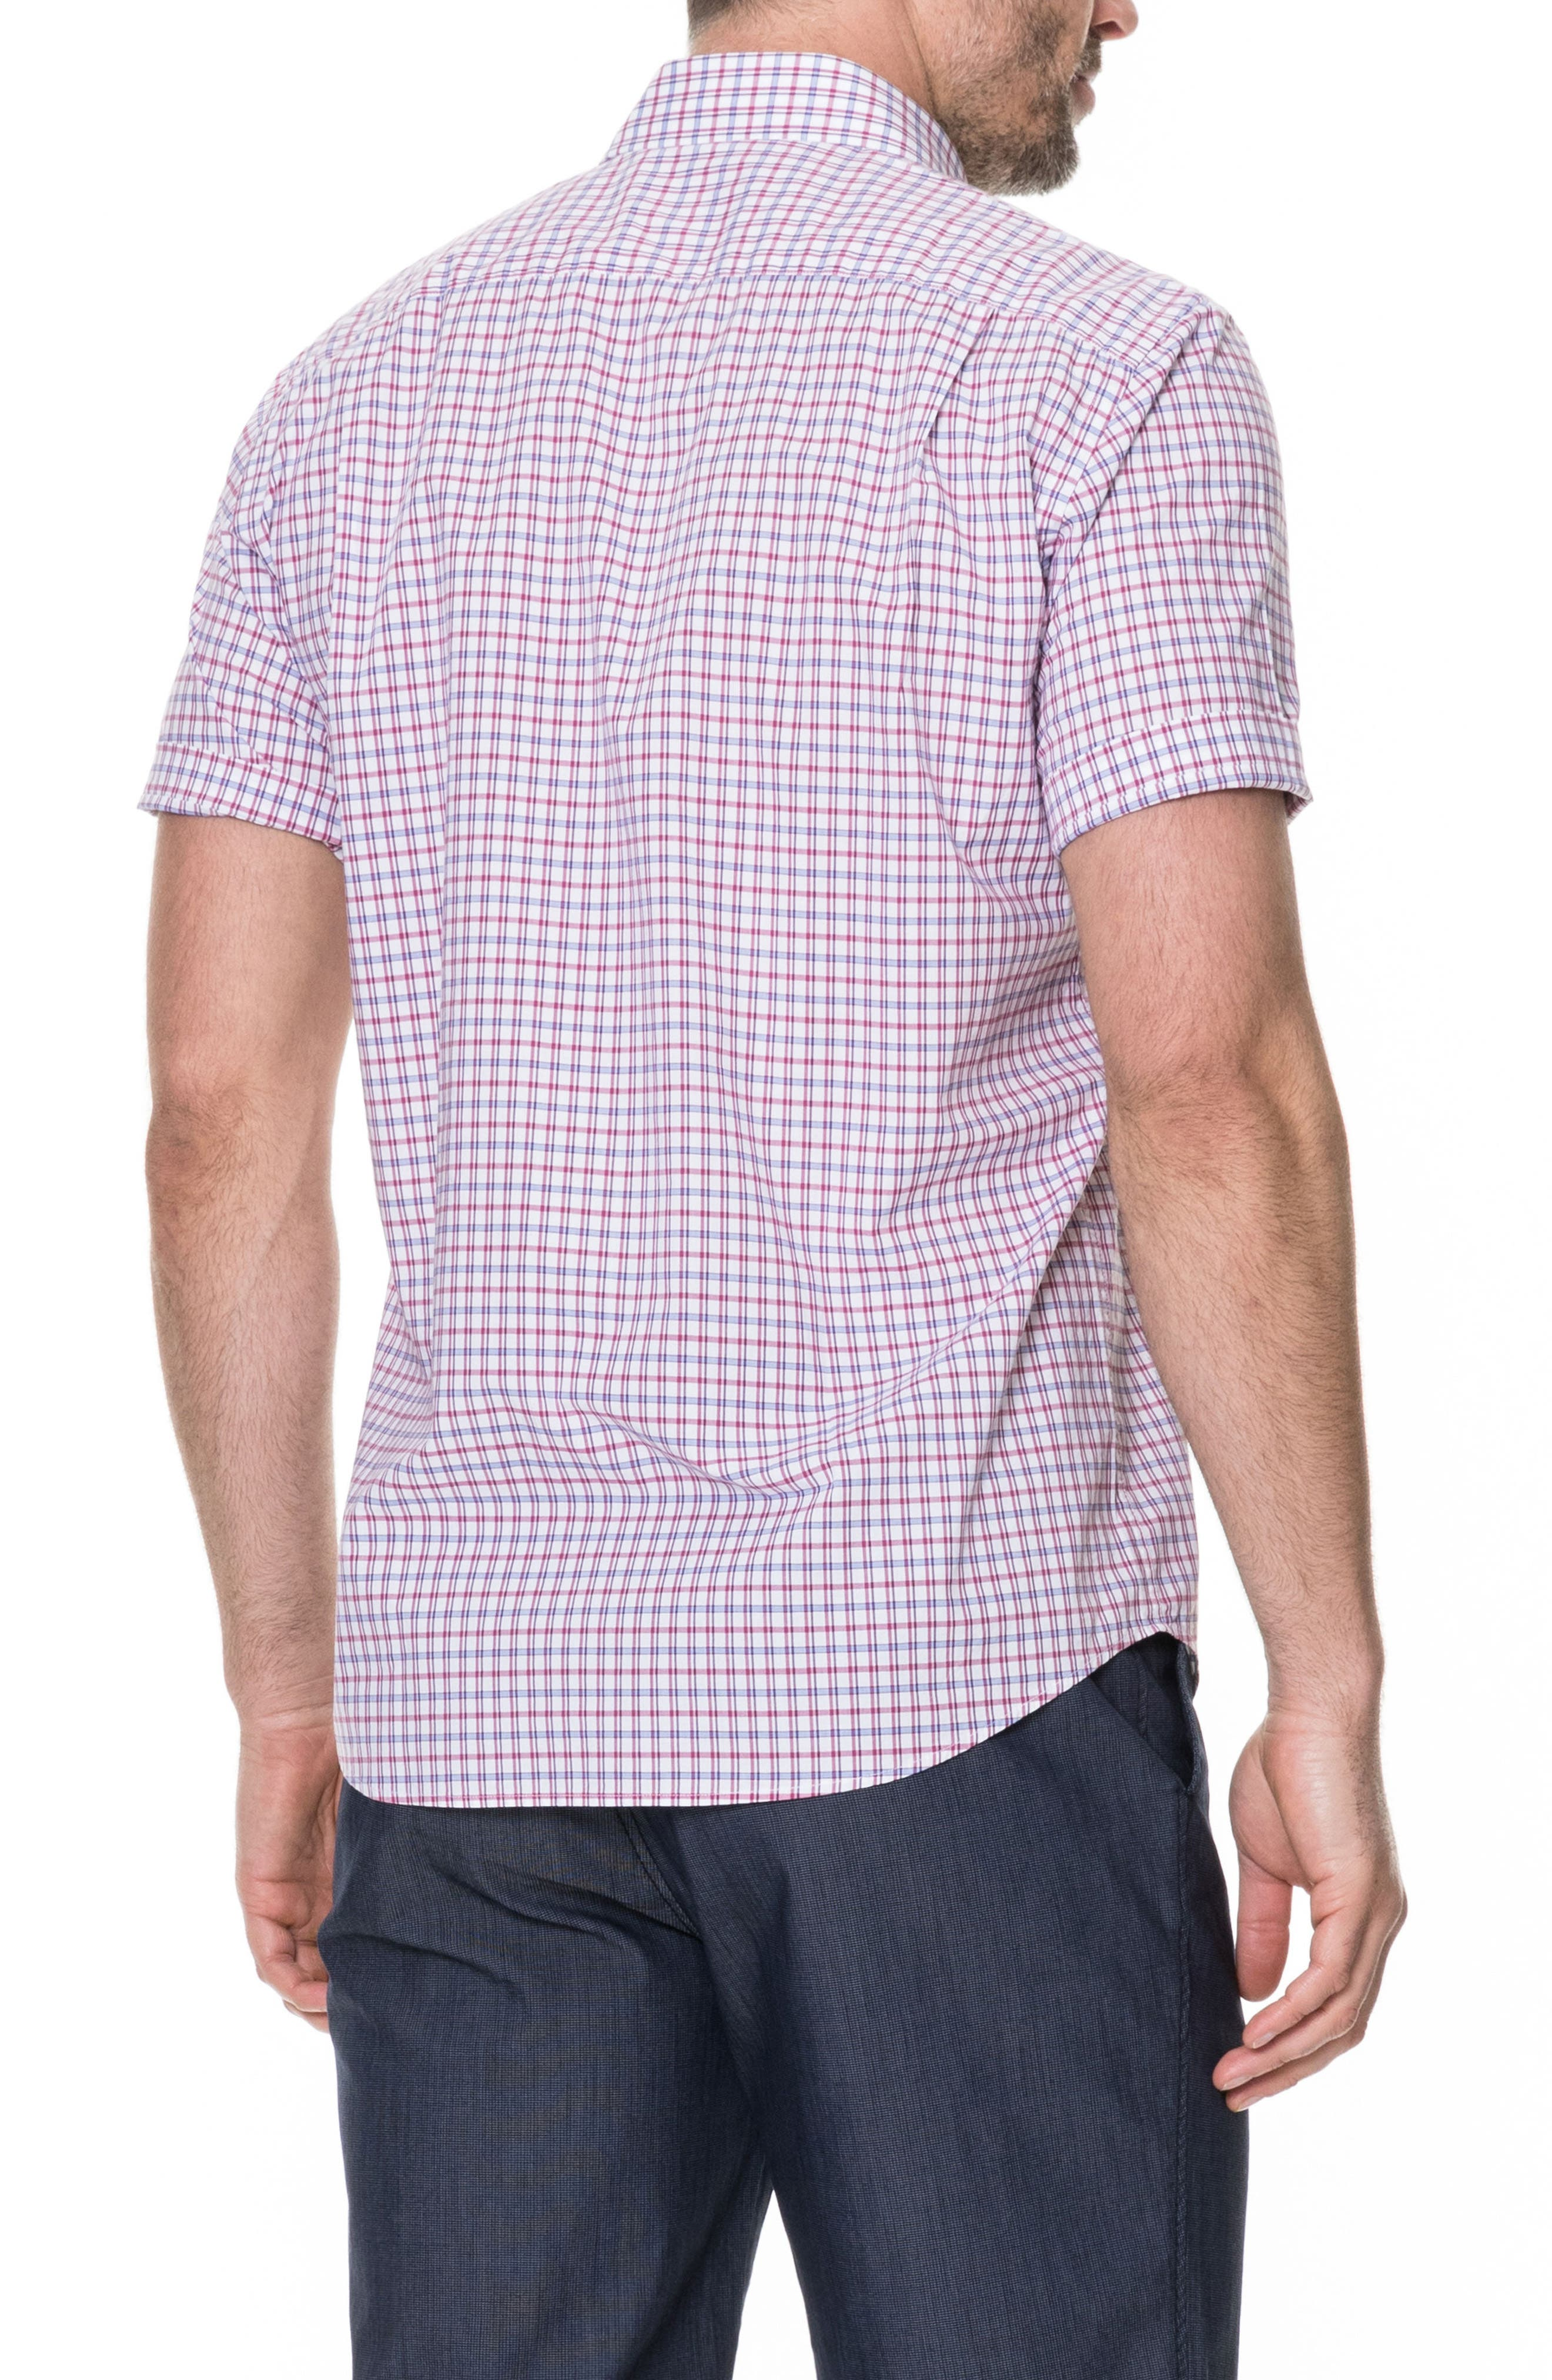 Waterford Regular Fit Sport Shirt,                             Alternate thumbnail 3, color,                             Mulberry